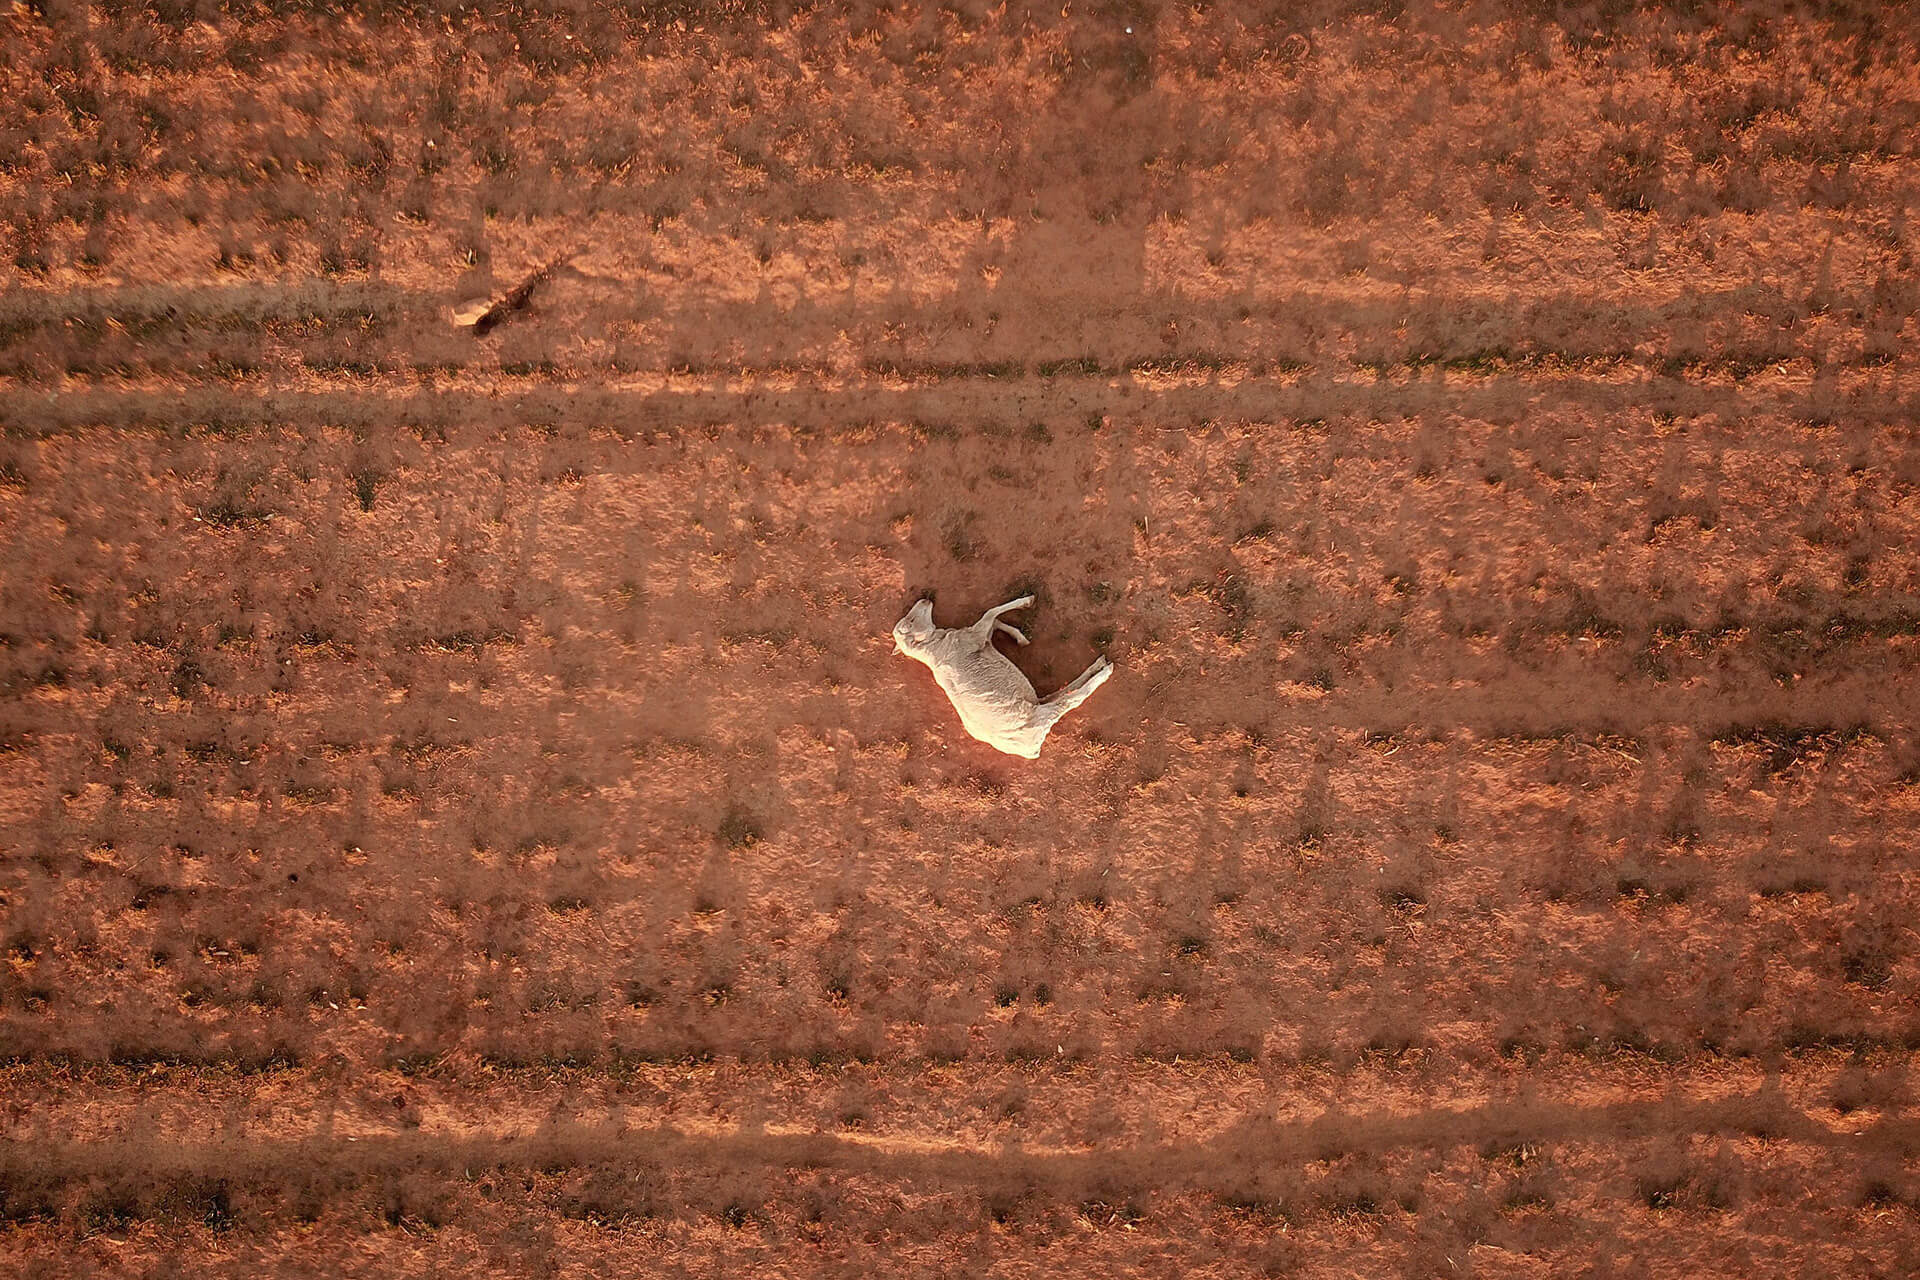 A dead sheep lies in a dry and dusty field of a failed crop near Parkes, New South Wales, Australia